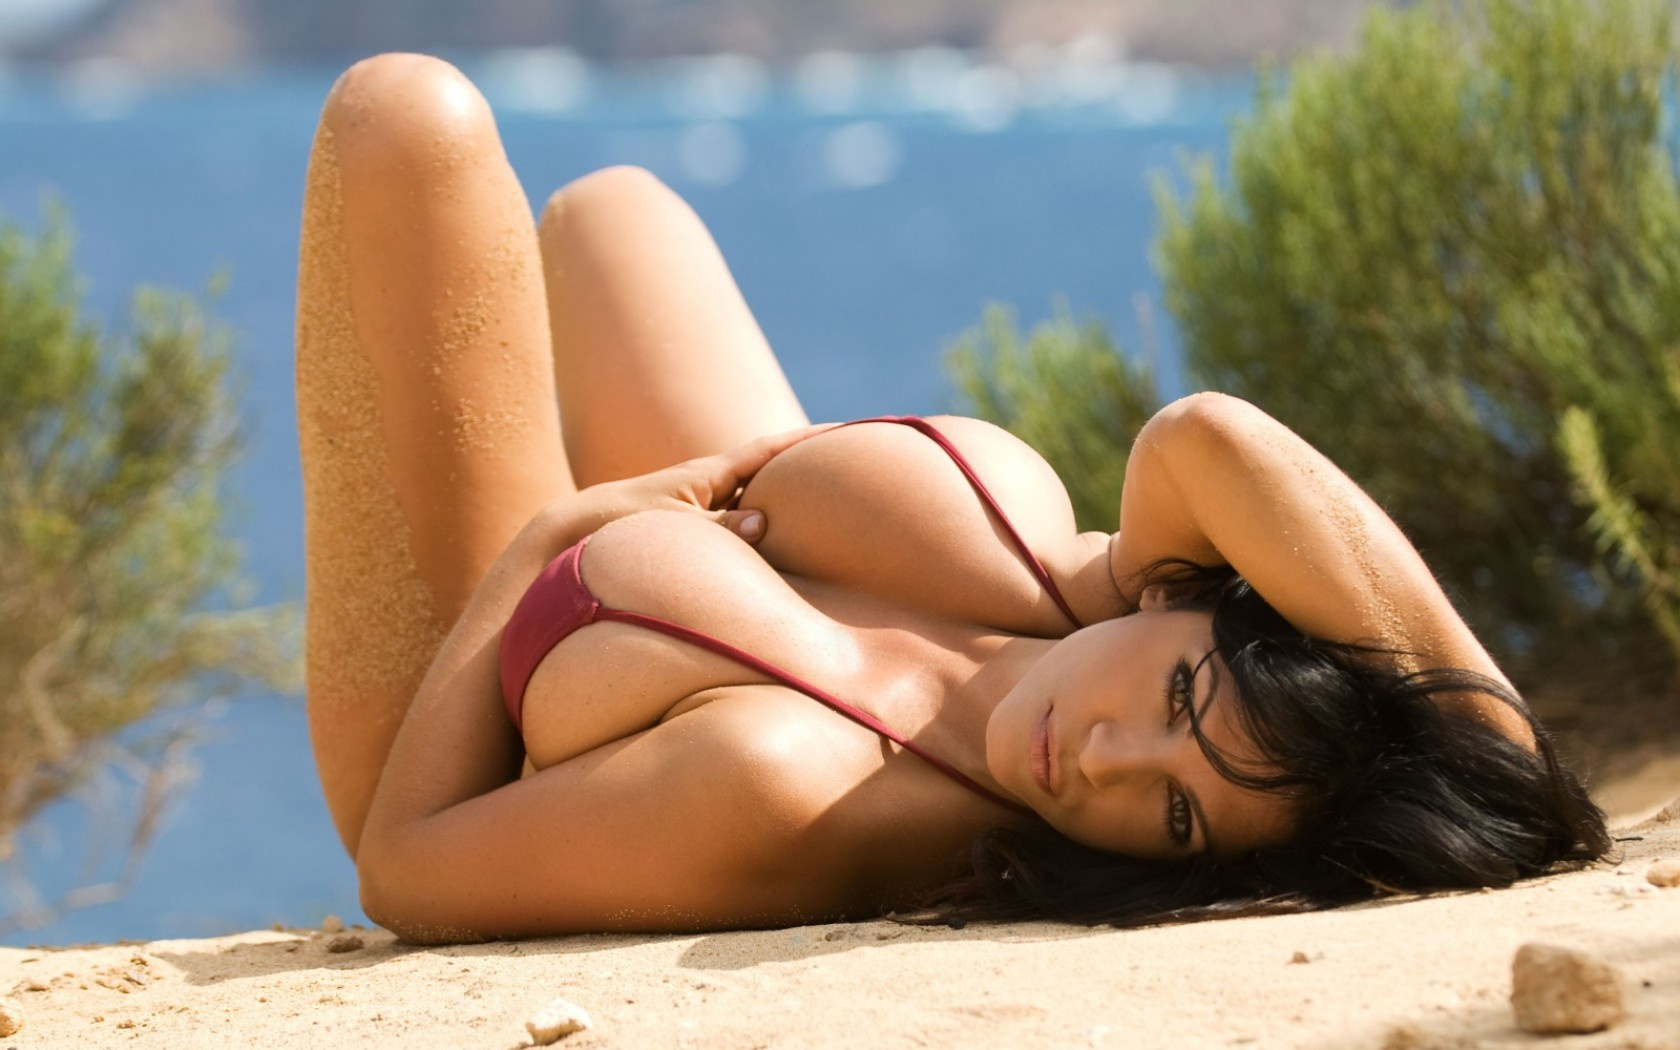 asian single women in beach lake Media in category topless women wearing bikini bottoms at the beach the following 76 files are in this category, out of 76 total.